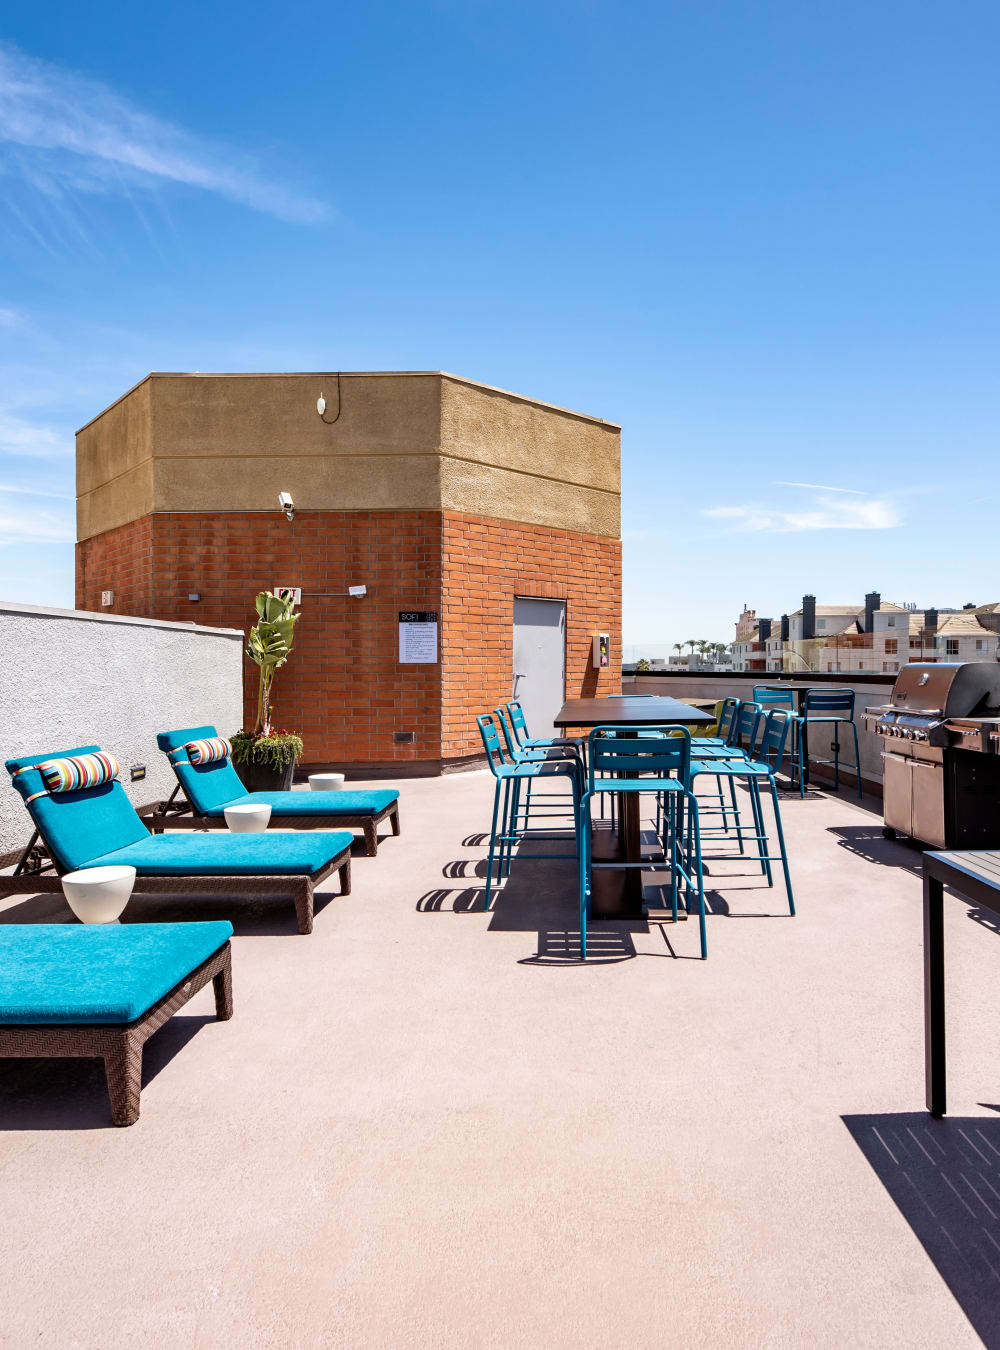 Rooftop lounge area with gas barbecue grills at Sofi at 3rd in Long Beach, California